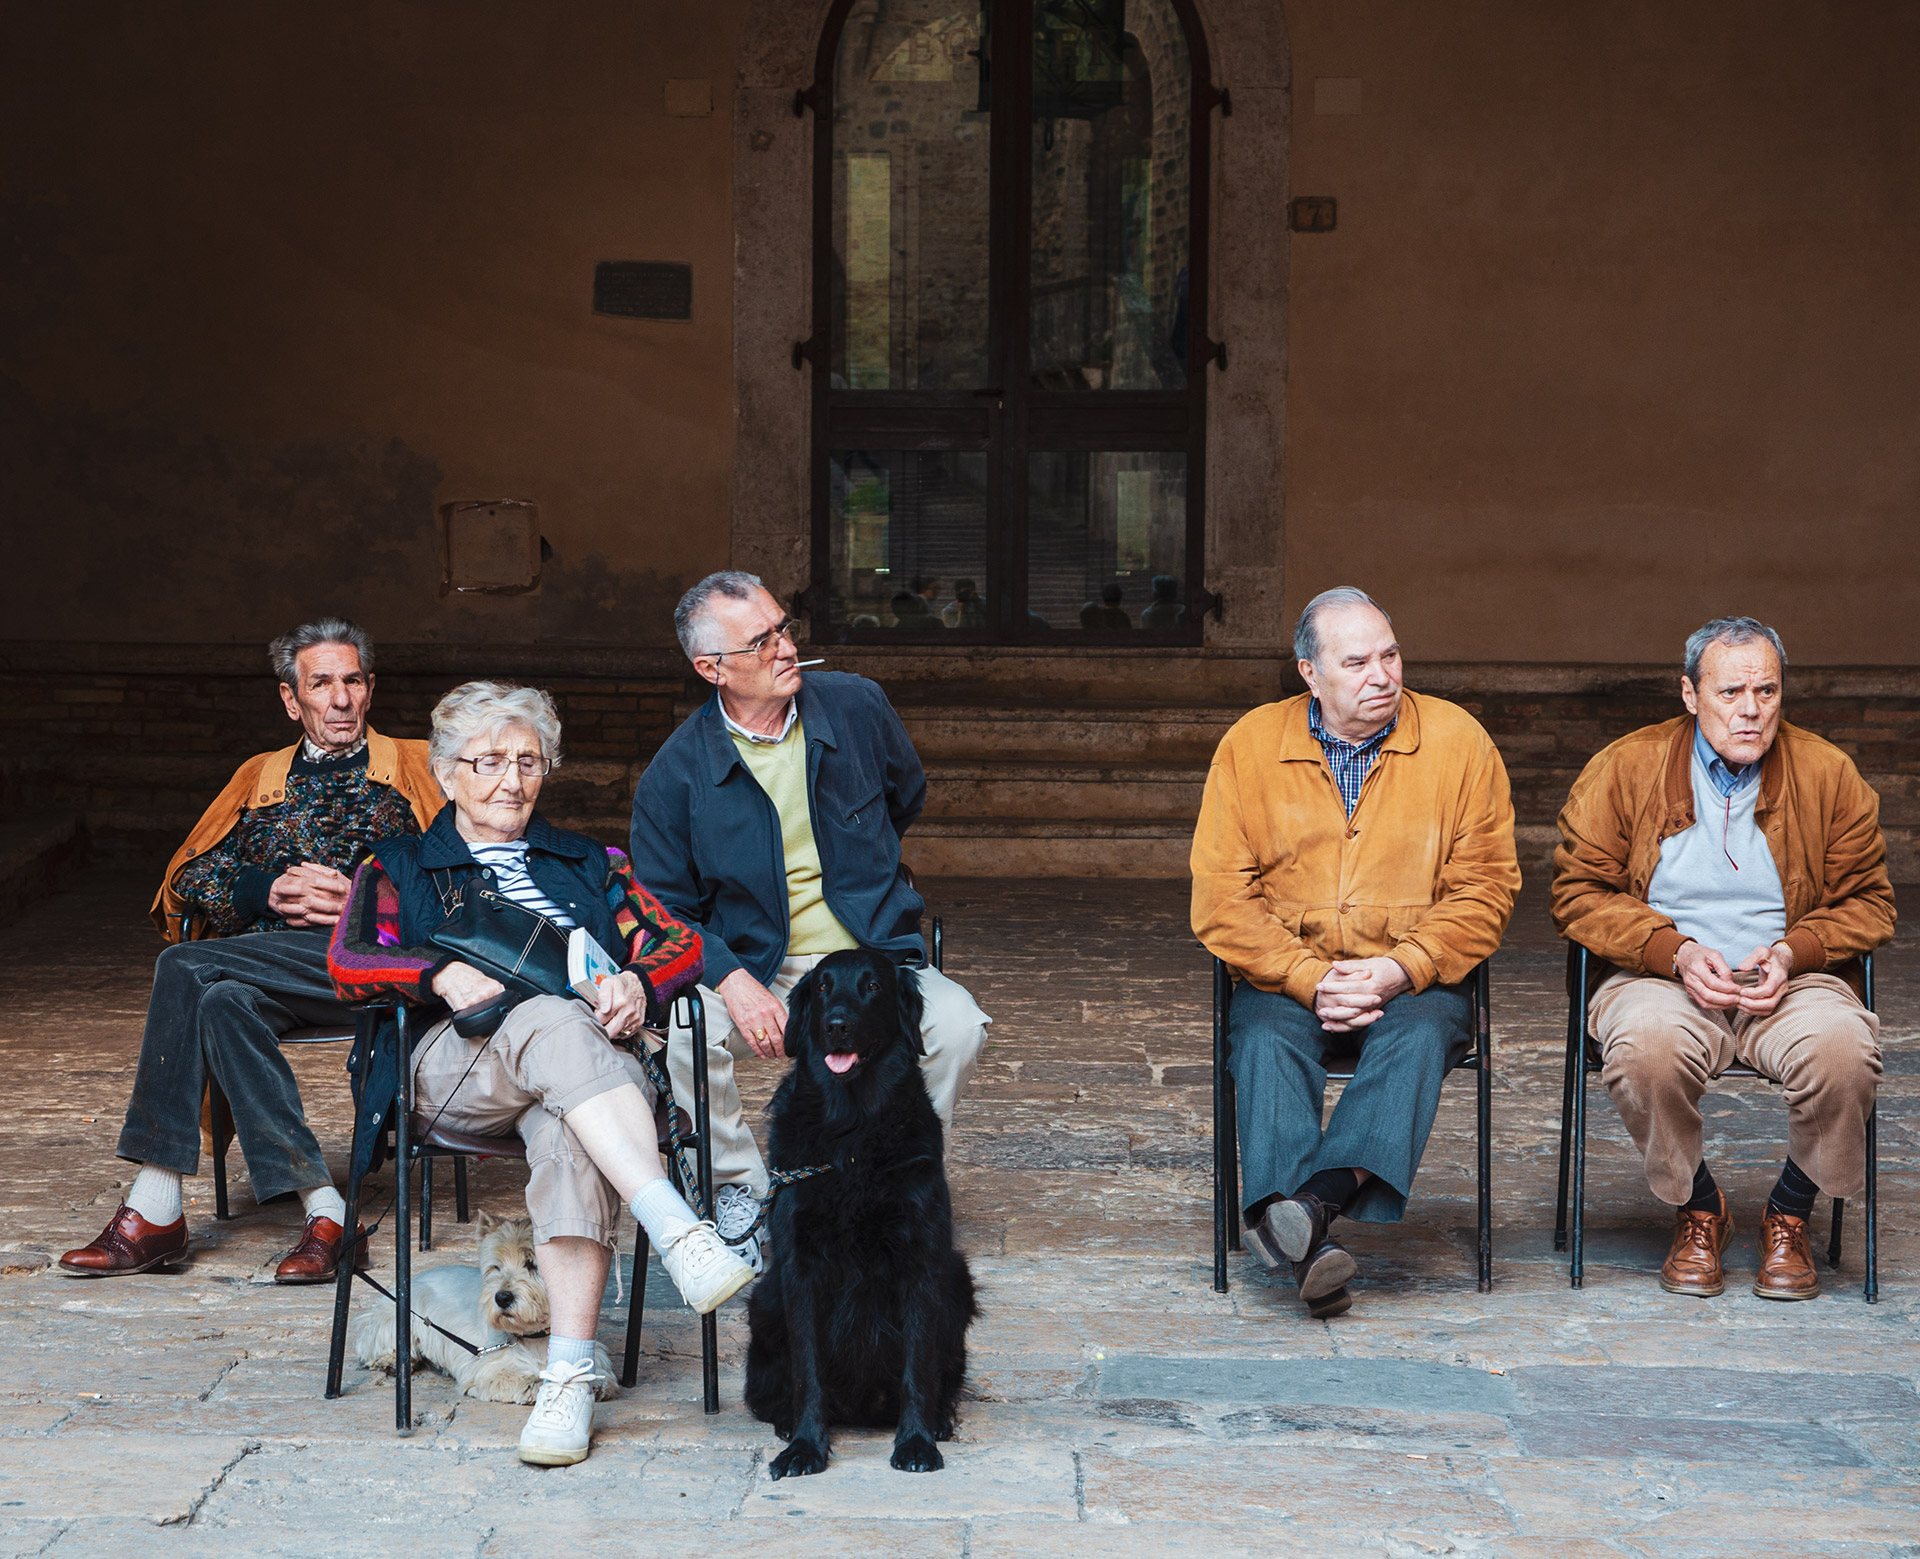 Siena and its people. lifestyle in Italy